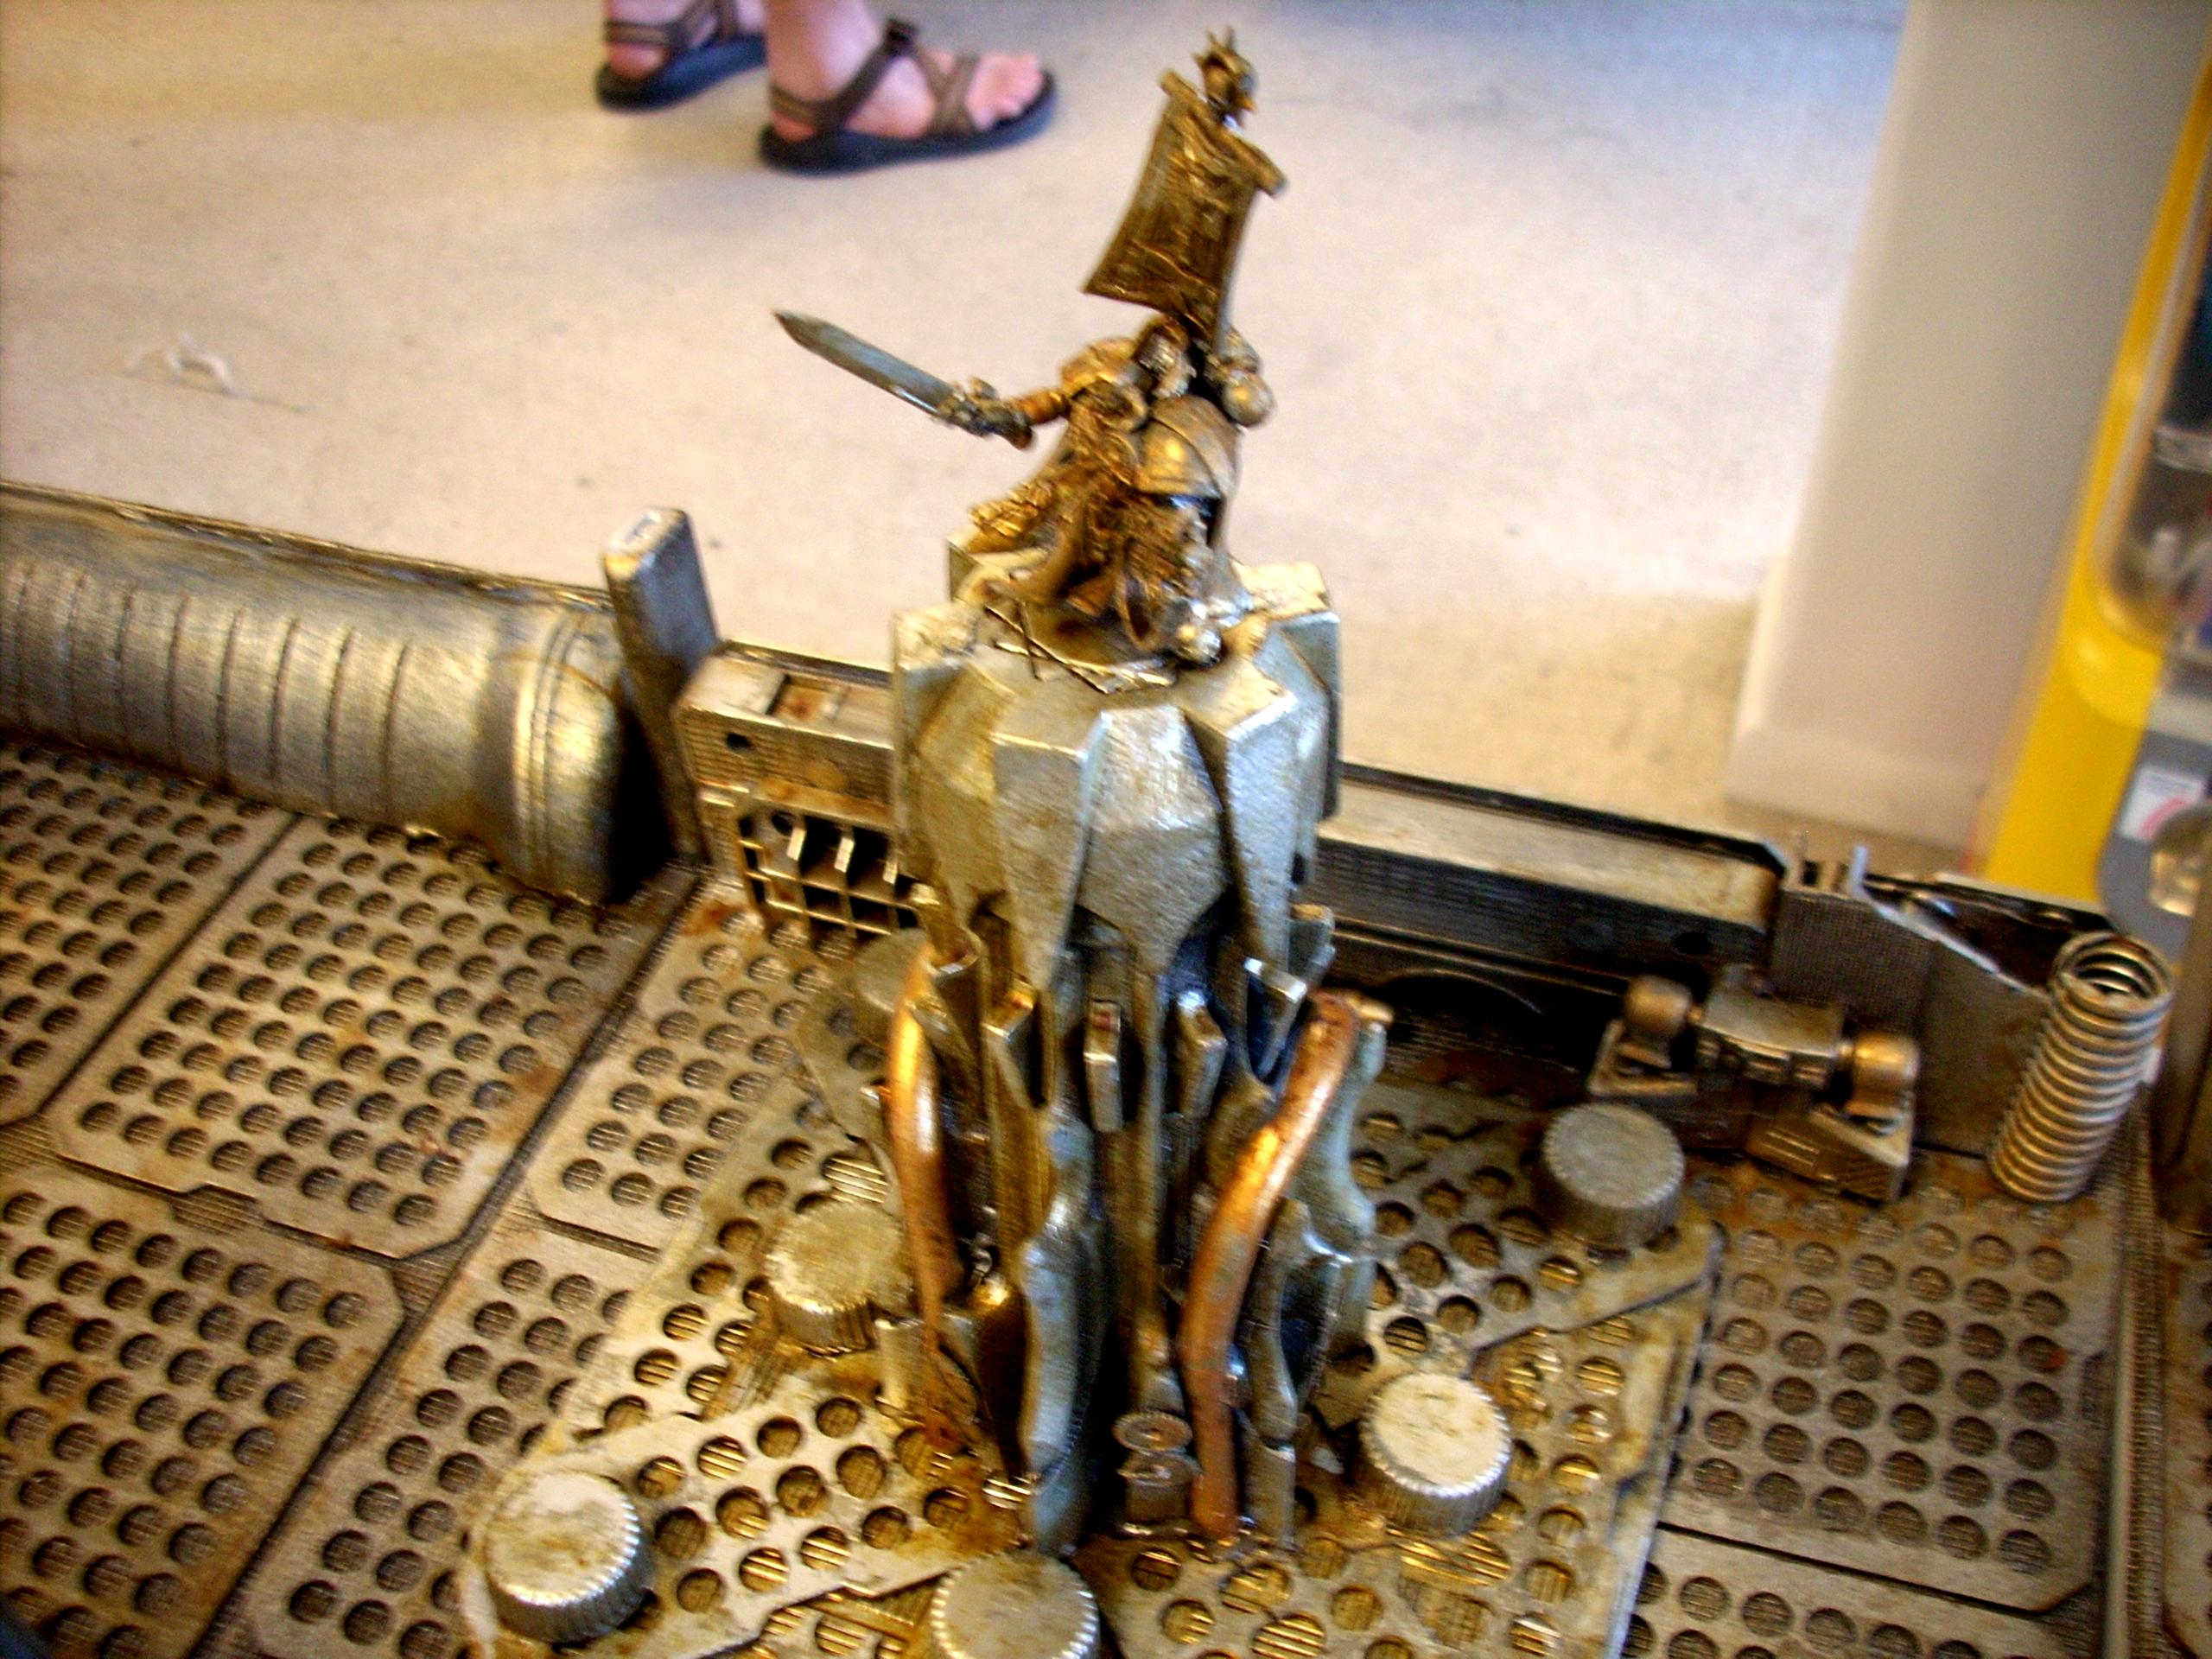 Corporation, Elves, Imperial Guard, Mantic, Spaceship, Tau, Town, Undead, Wargame